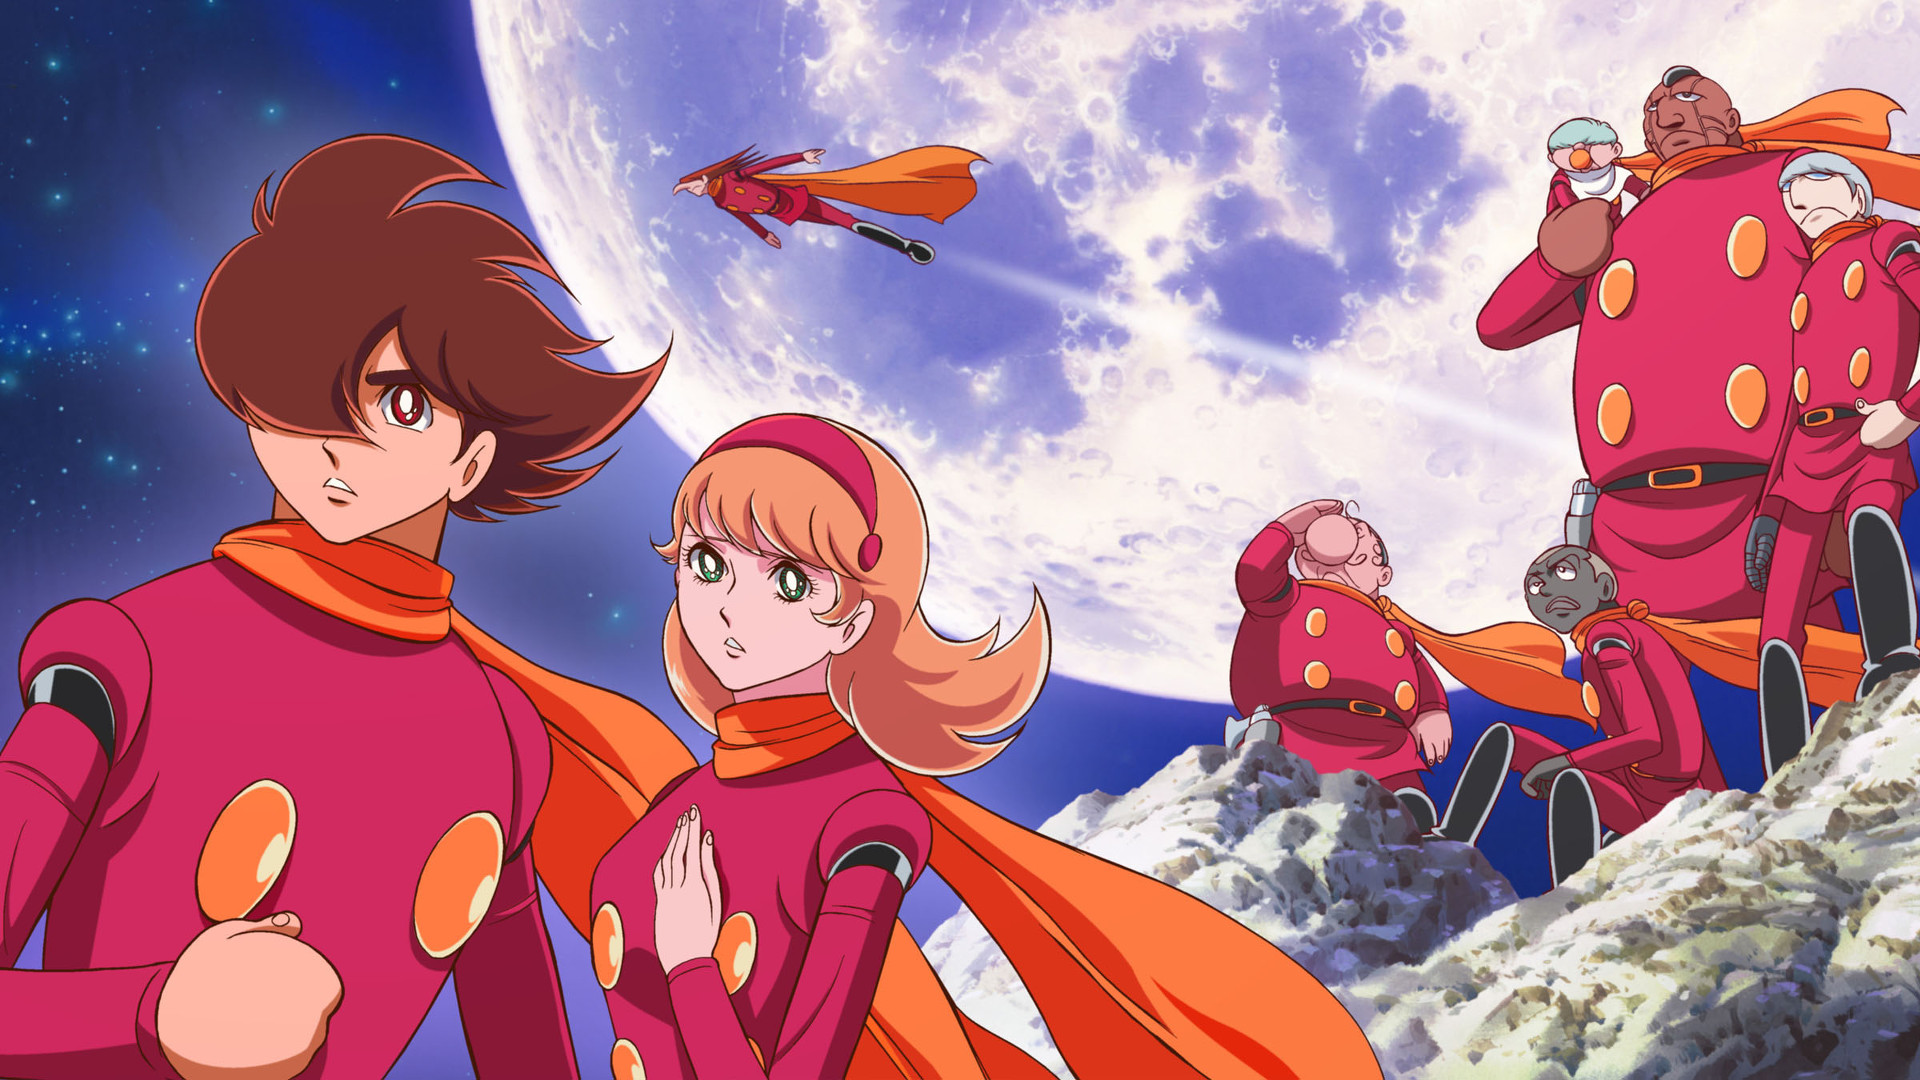 How To Use Gif As Wallpaper Iphone X Cyborg 009 Hd Wallpaper Background Image 1920x1080